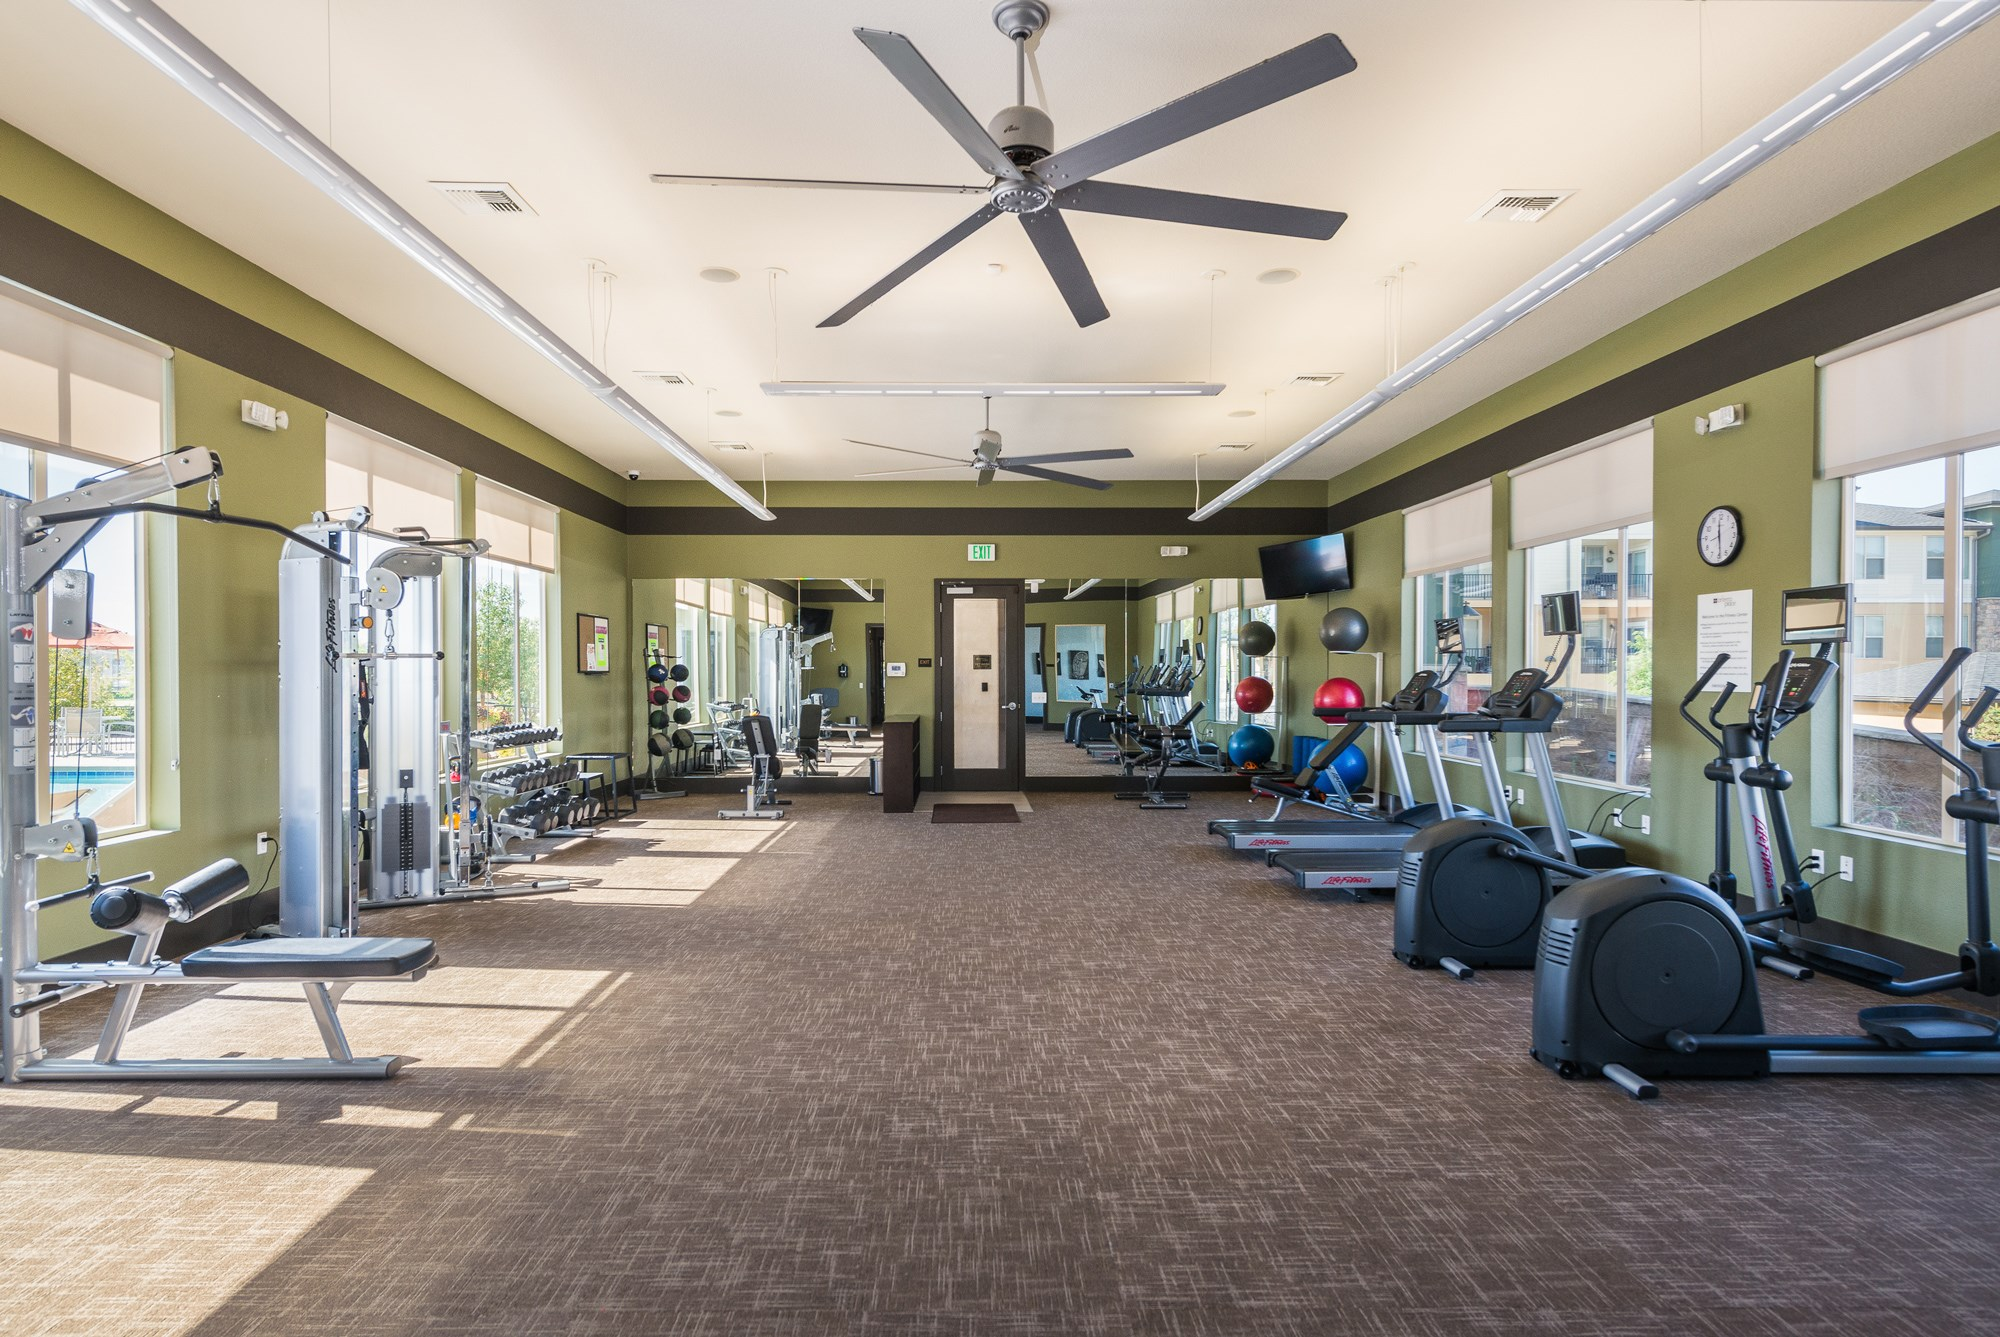 Fitness Center at Arterra Place Apartments in Aurora, CO